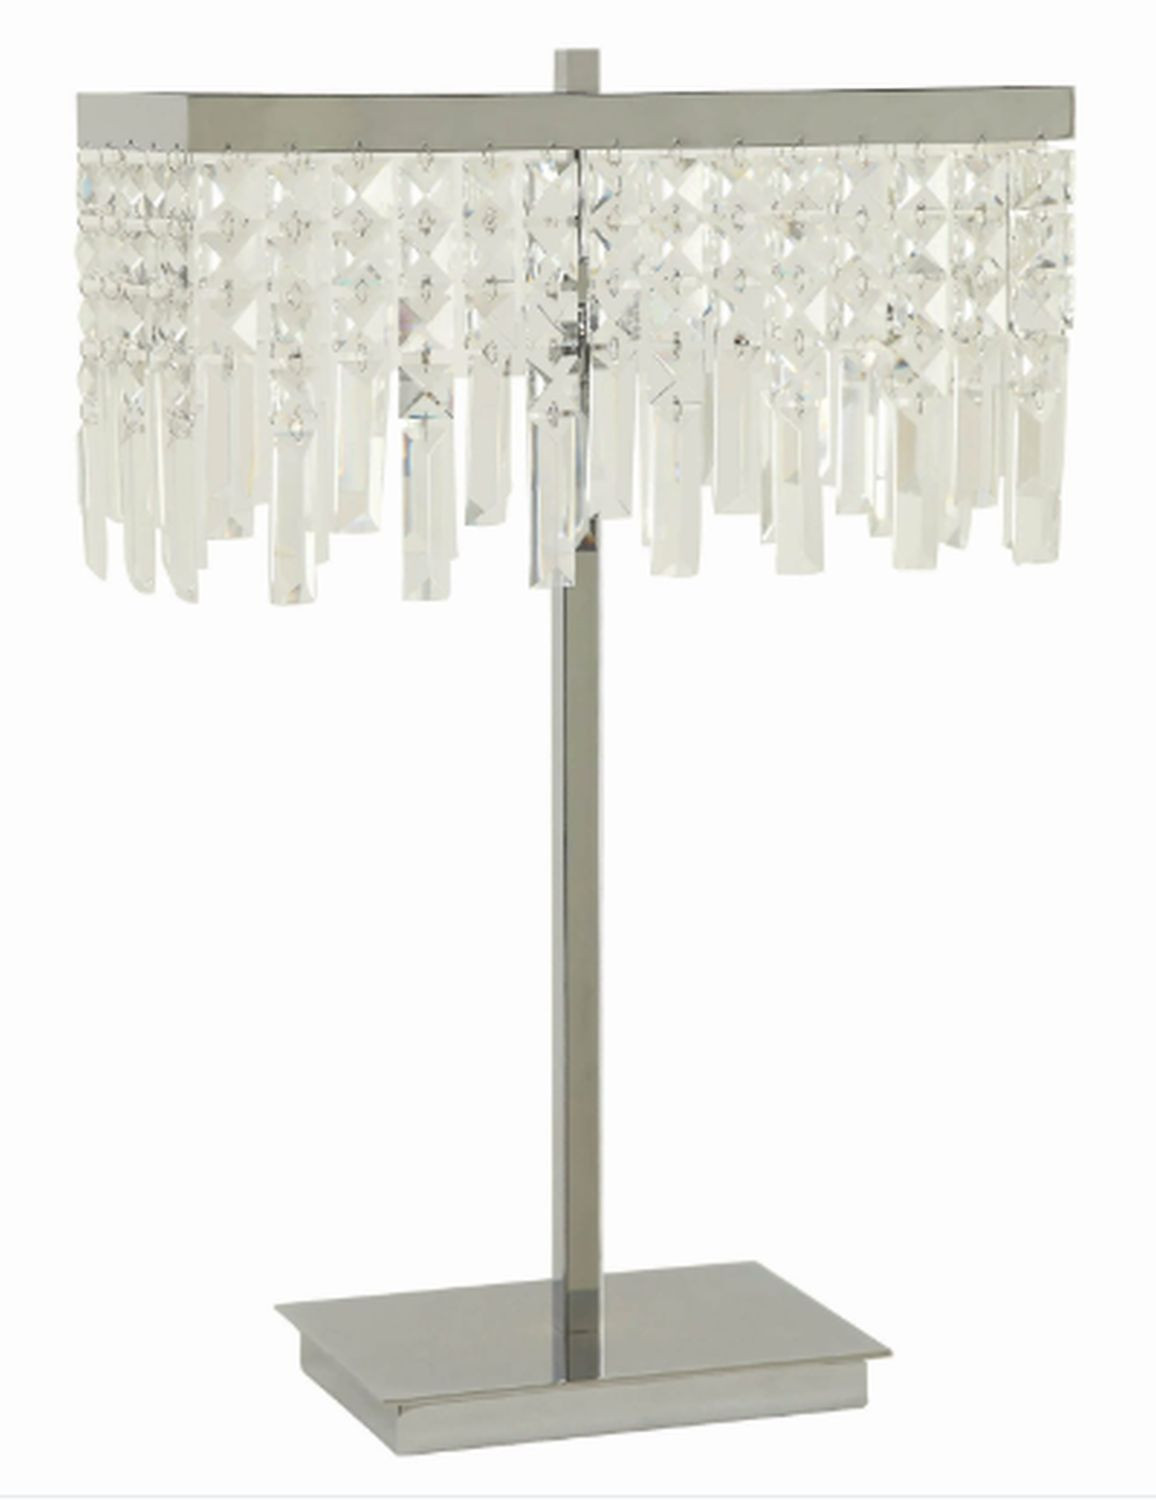 Table Lamp w/ Dropped Crystals Shade & Chrome Base